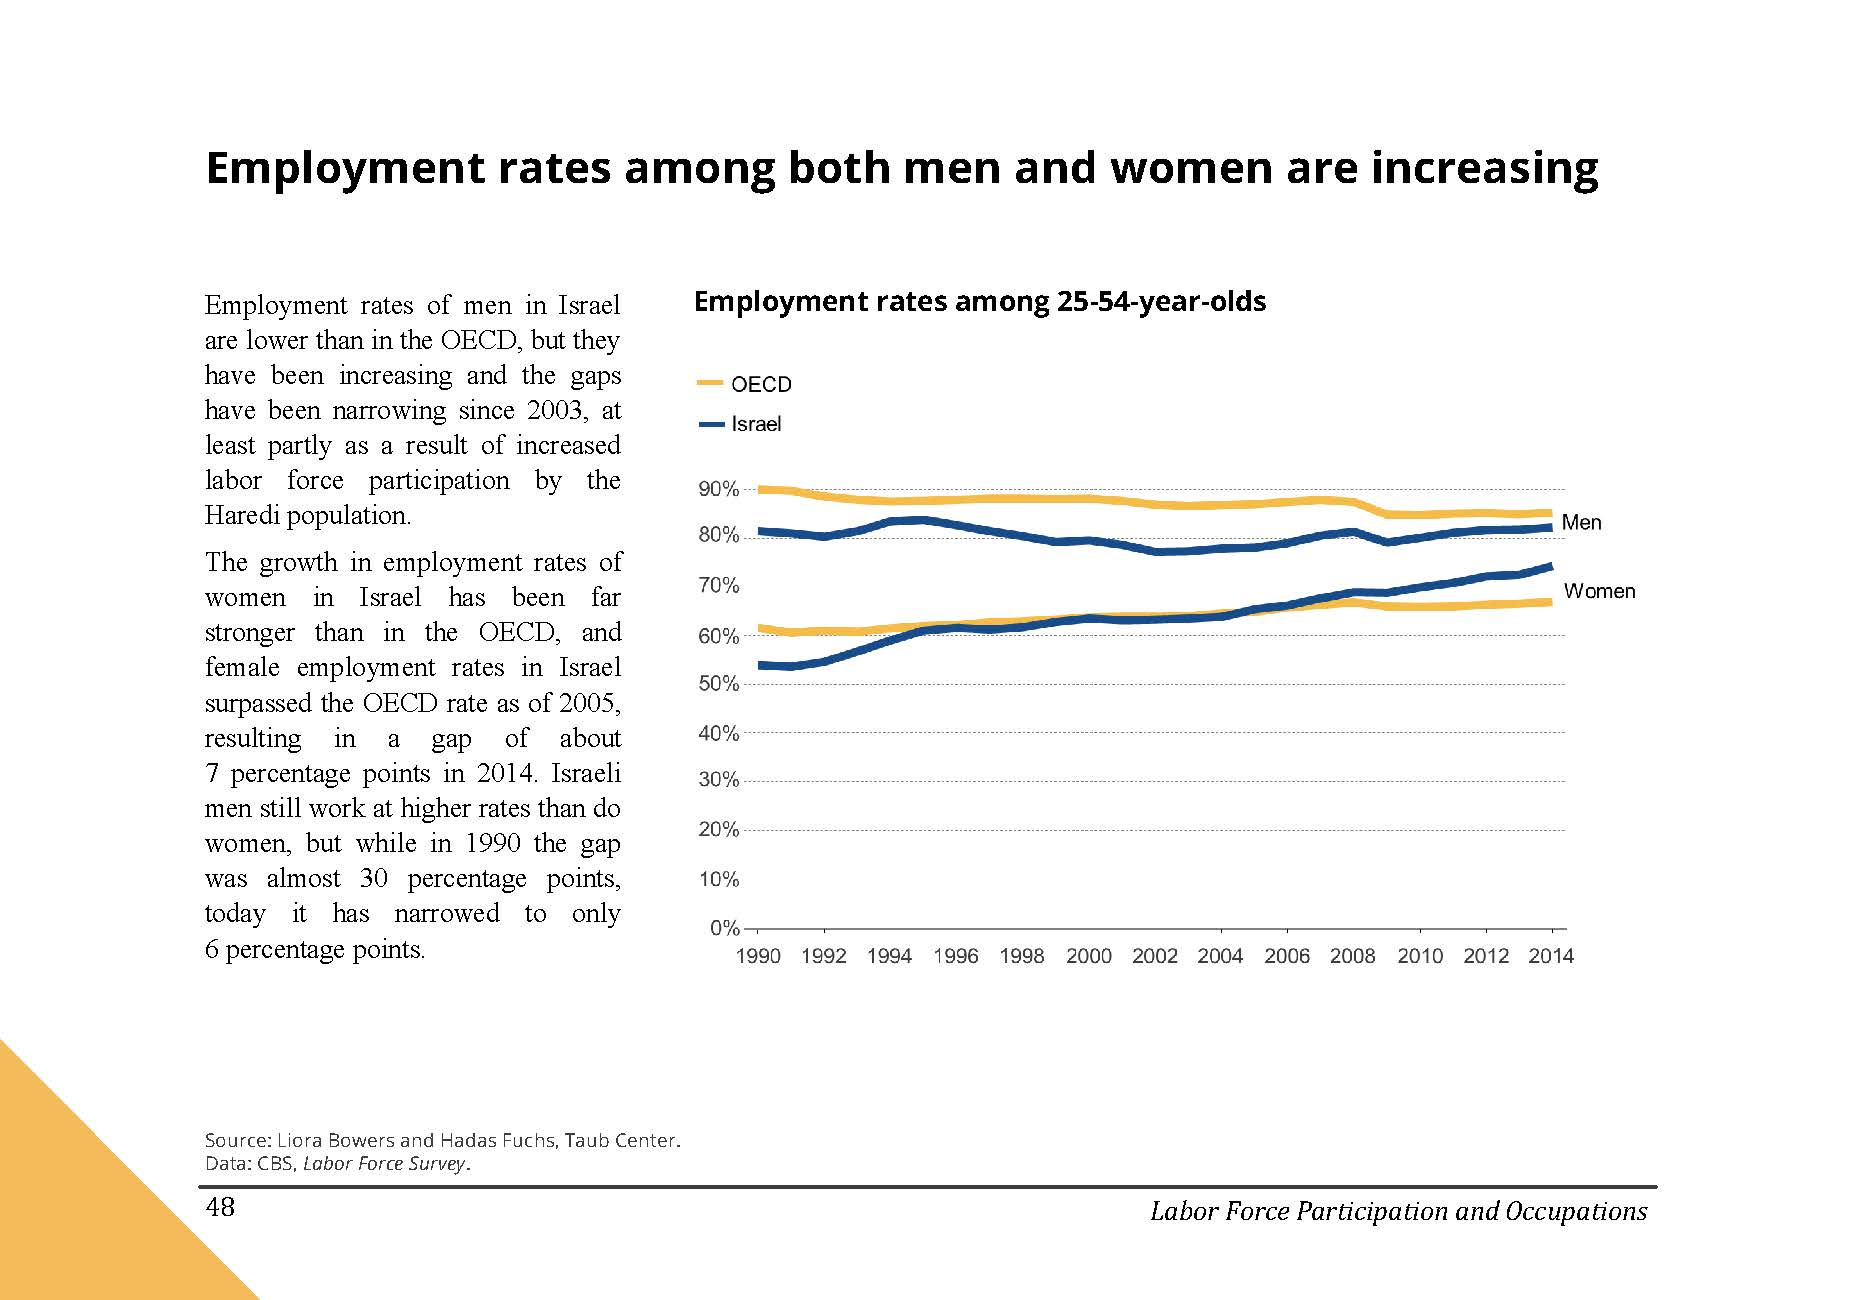 Employment rates among both men and women are increasing in Israel